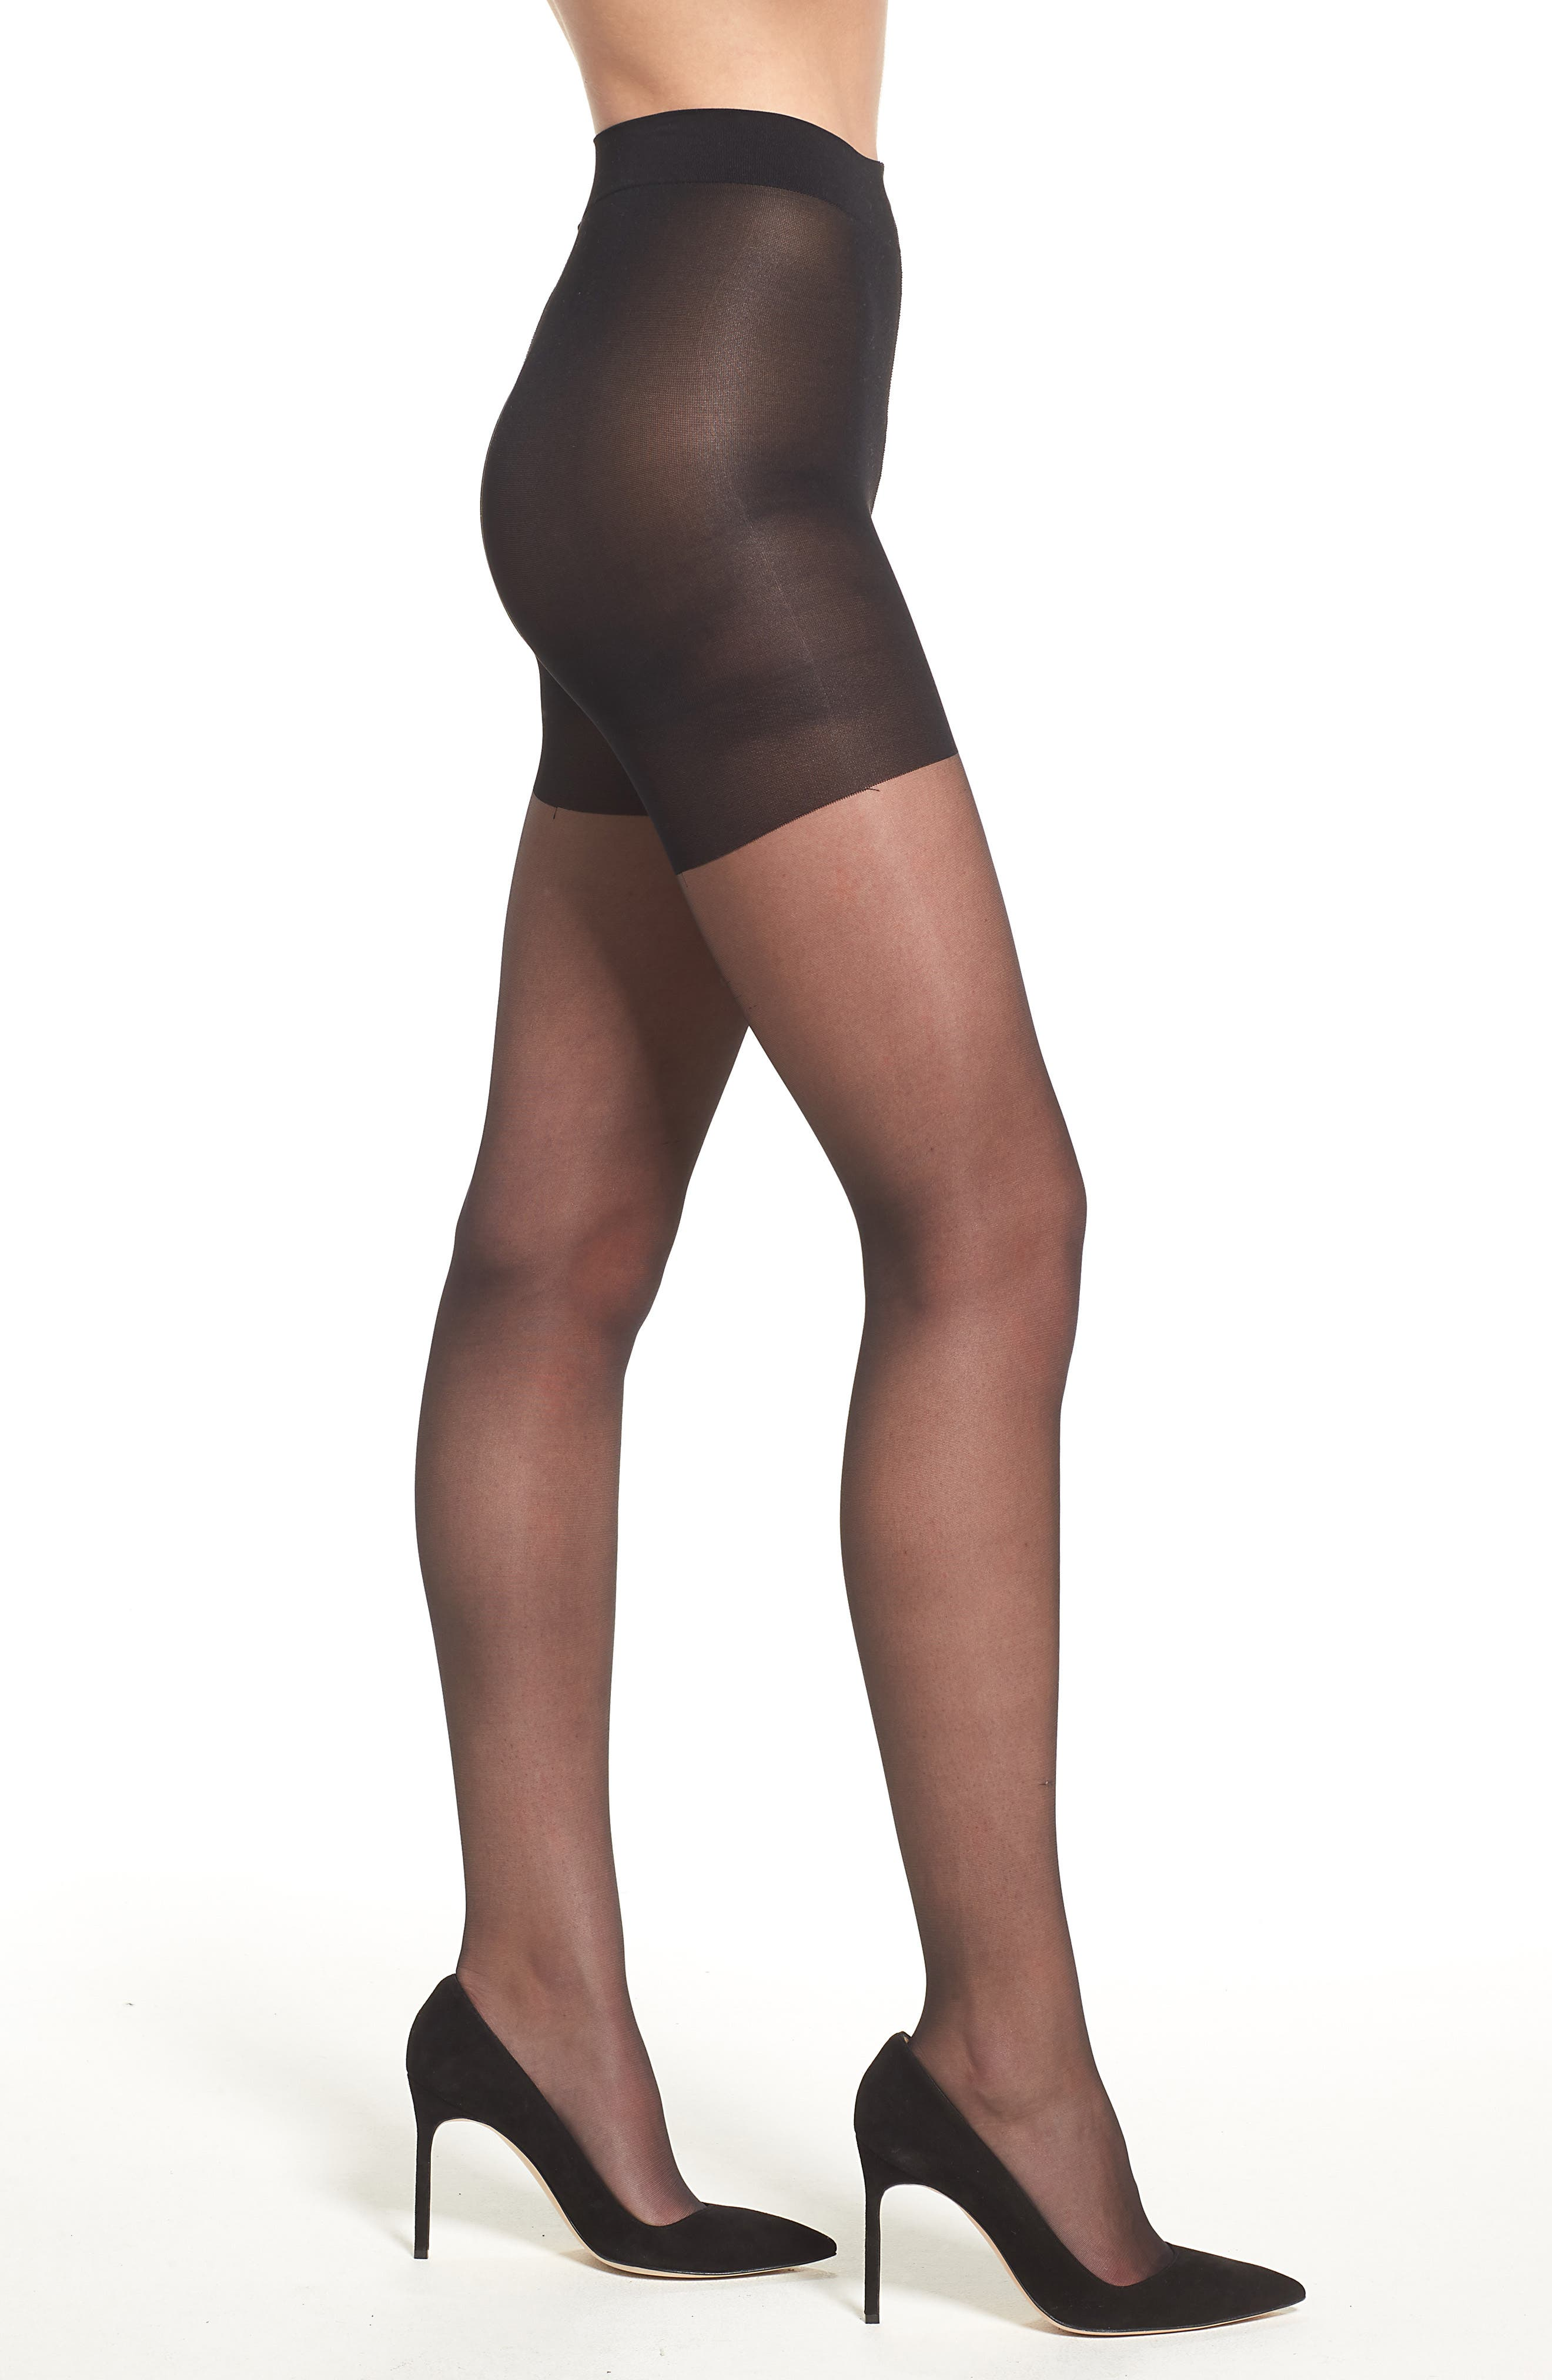 Sheer Control Top Pantyhose,                         Main,                         color, Black